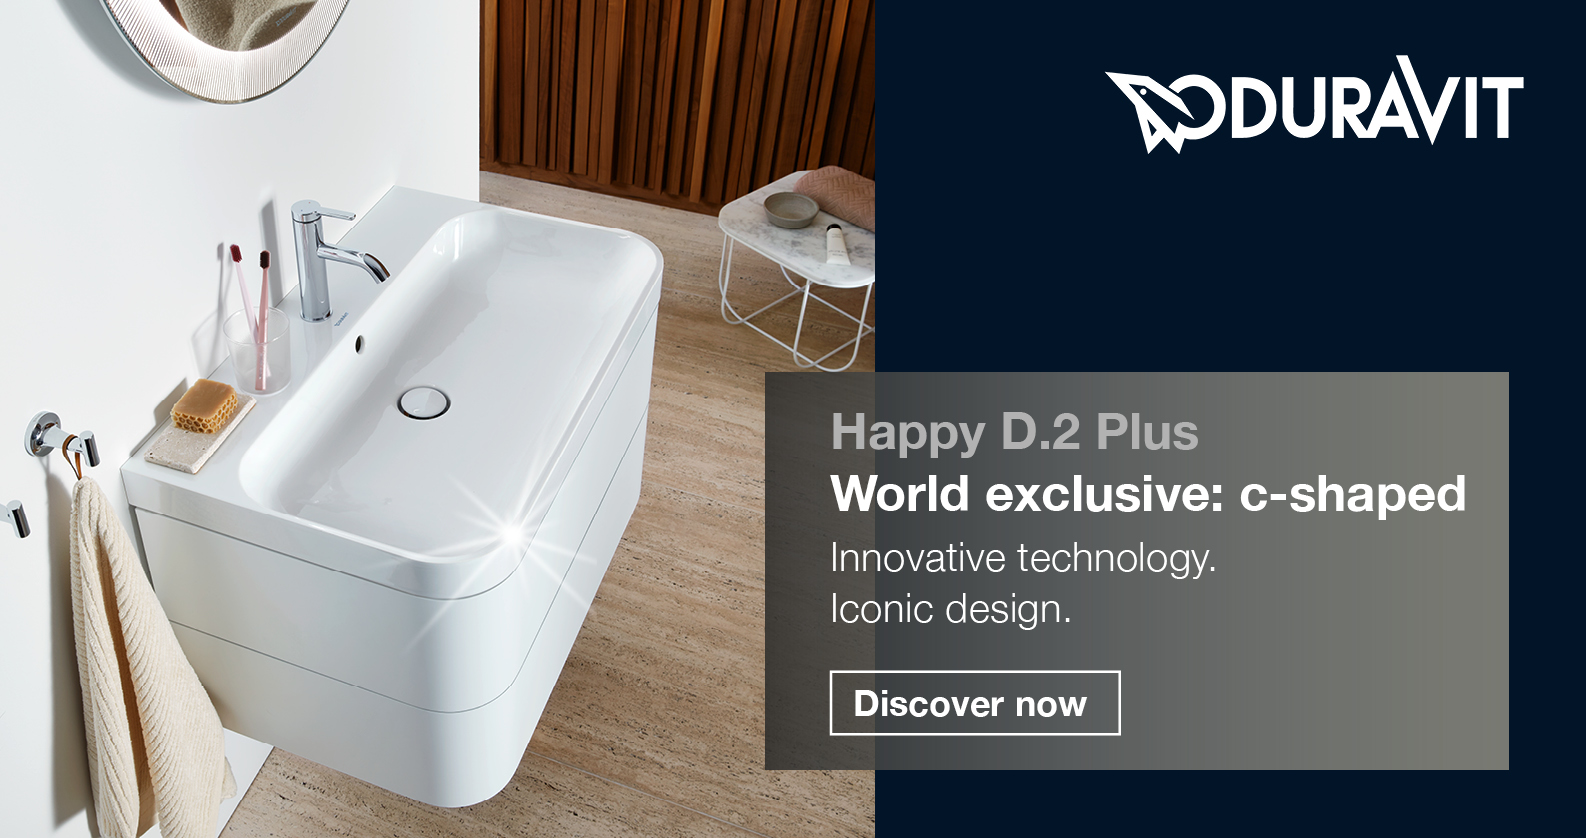 Duravit Happy D.2 Plus at xTWOstore